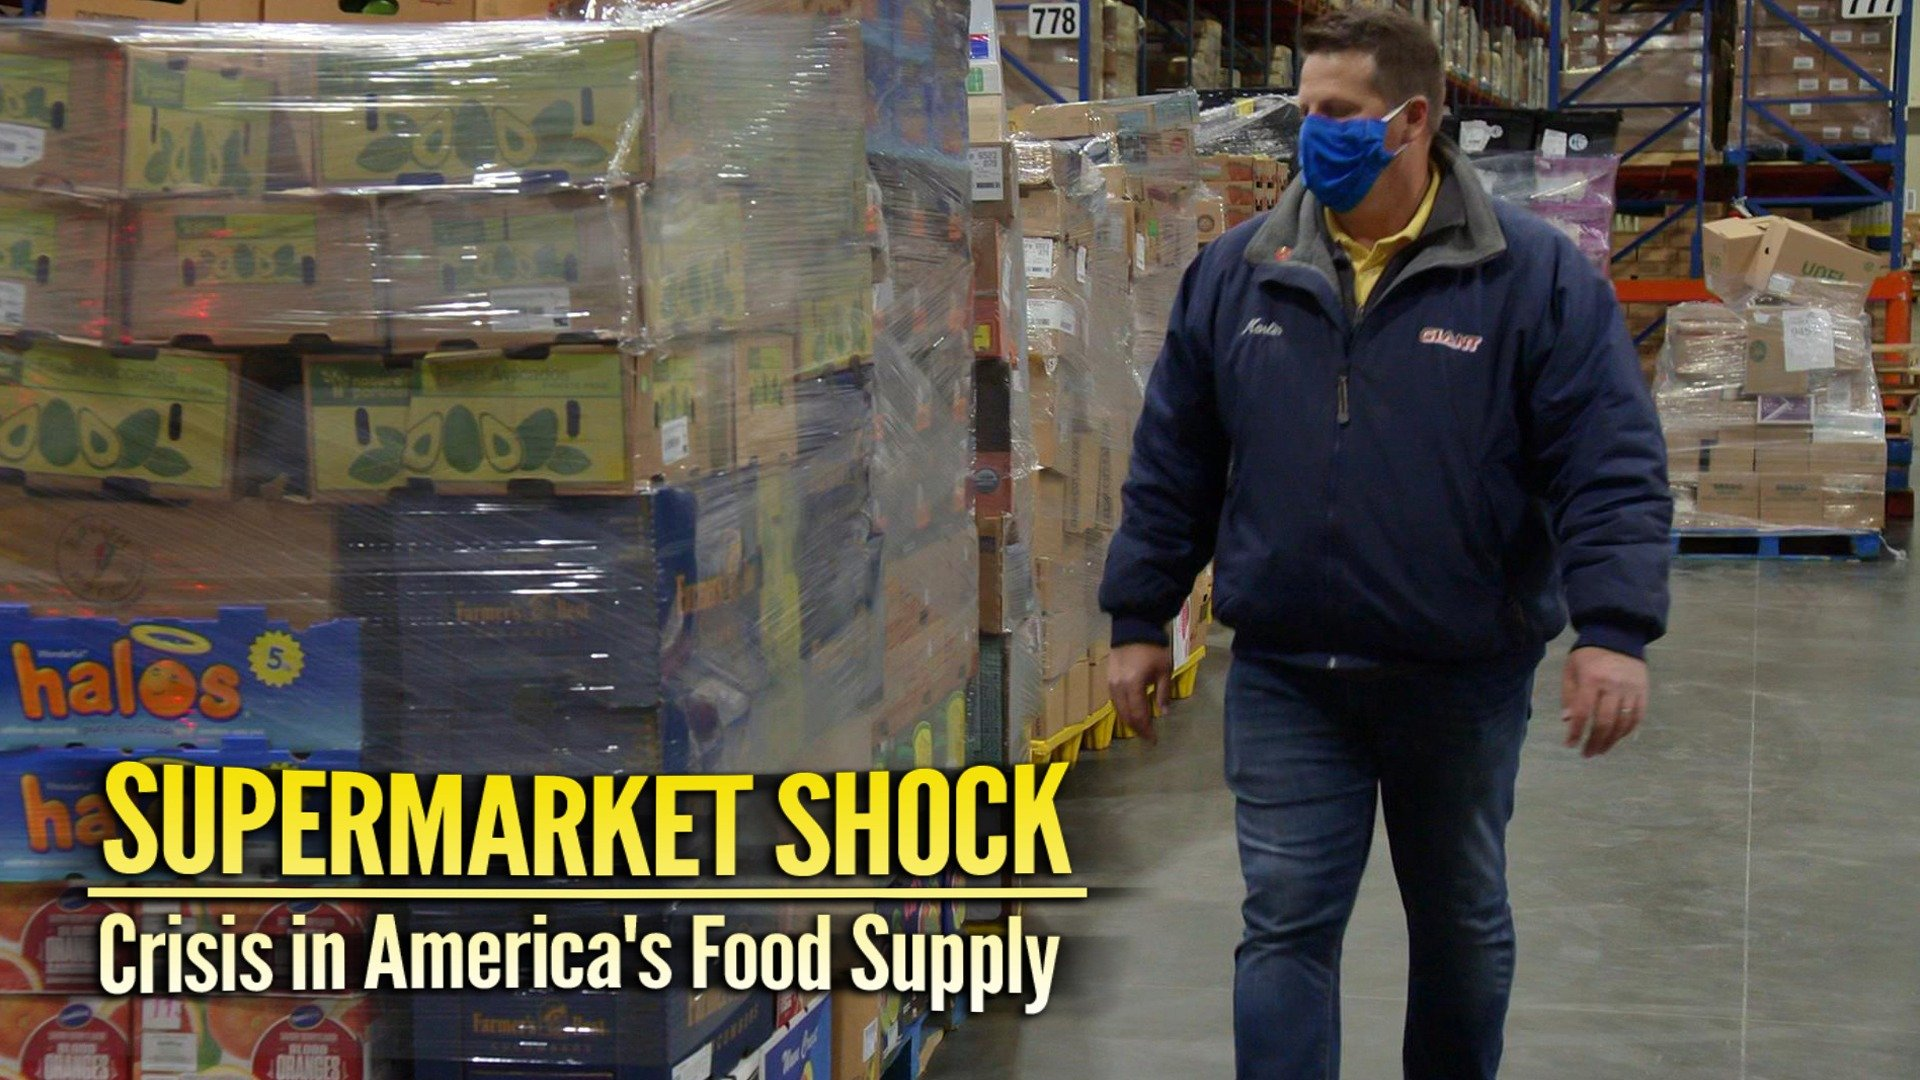 Supermarket Shock: Crisis in America's Food Supply